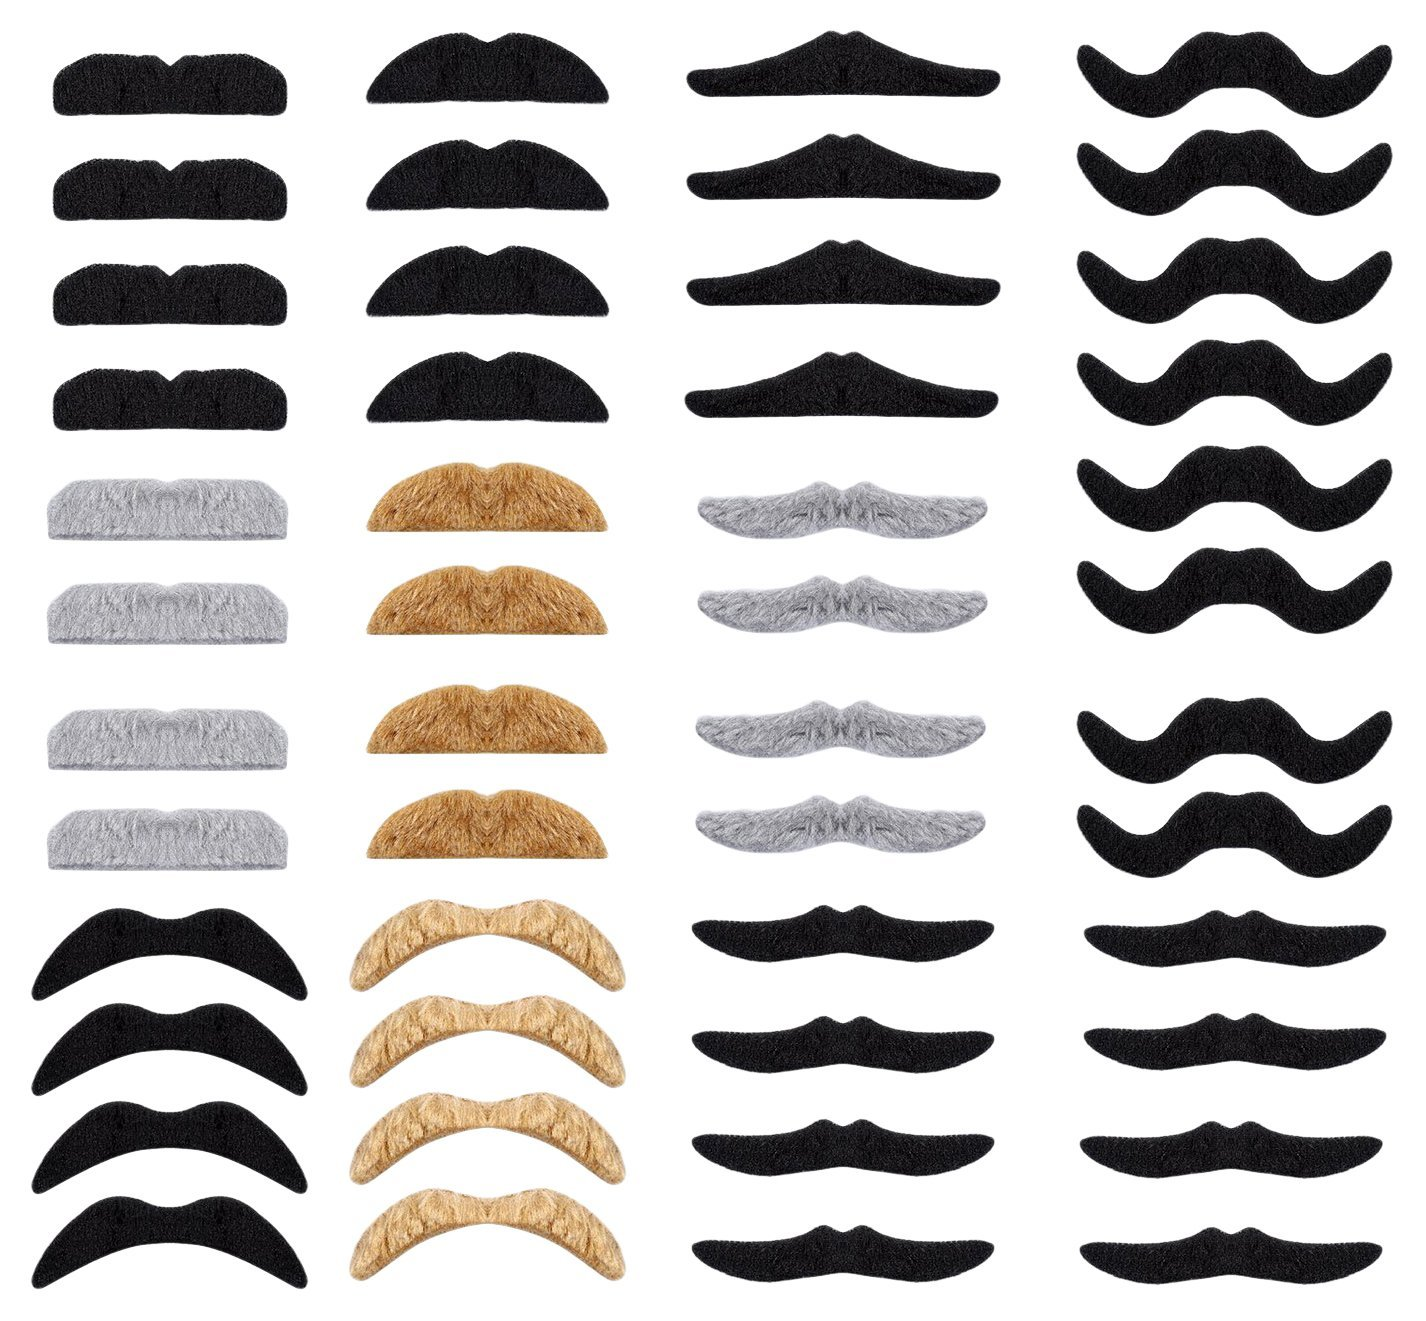 Cp Usa New 48 Piece Self Adhesive Fake Mustache Set Novelty Mustaches Festival Party Fun and Silly Styles